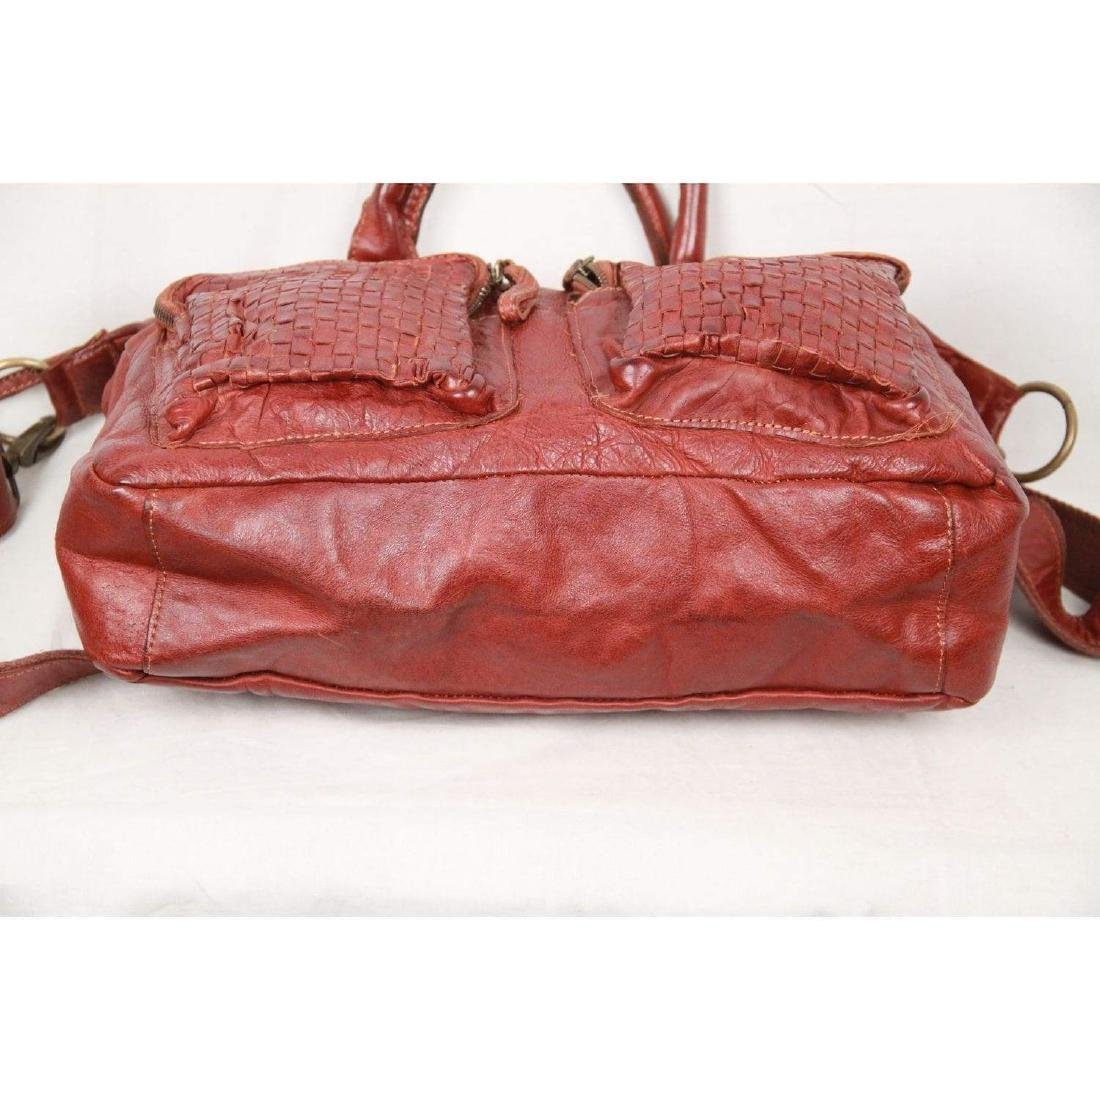 COWBOYSBAG Brown Leather THE BAG Satchel with WOVEN - 9